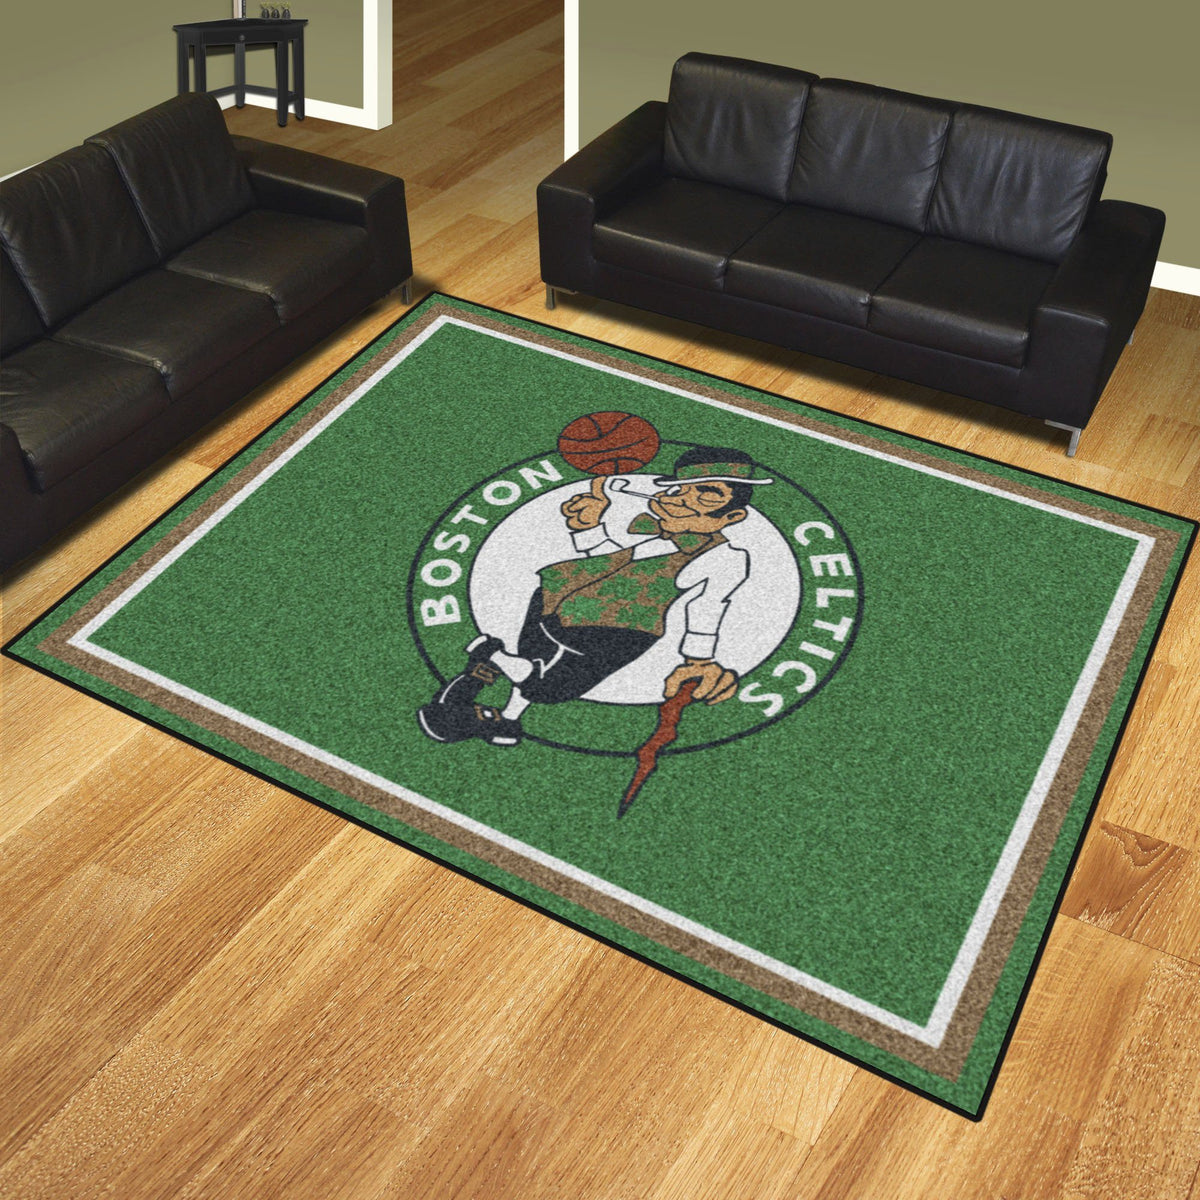 NBA - 8' x 10' Rug NBA Mats, Plush Rugs, 8x10 Rug, NBA, Home Fan Mats Boston Celtics